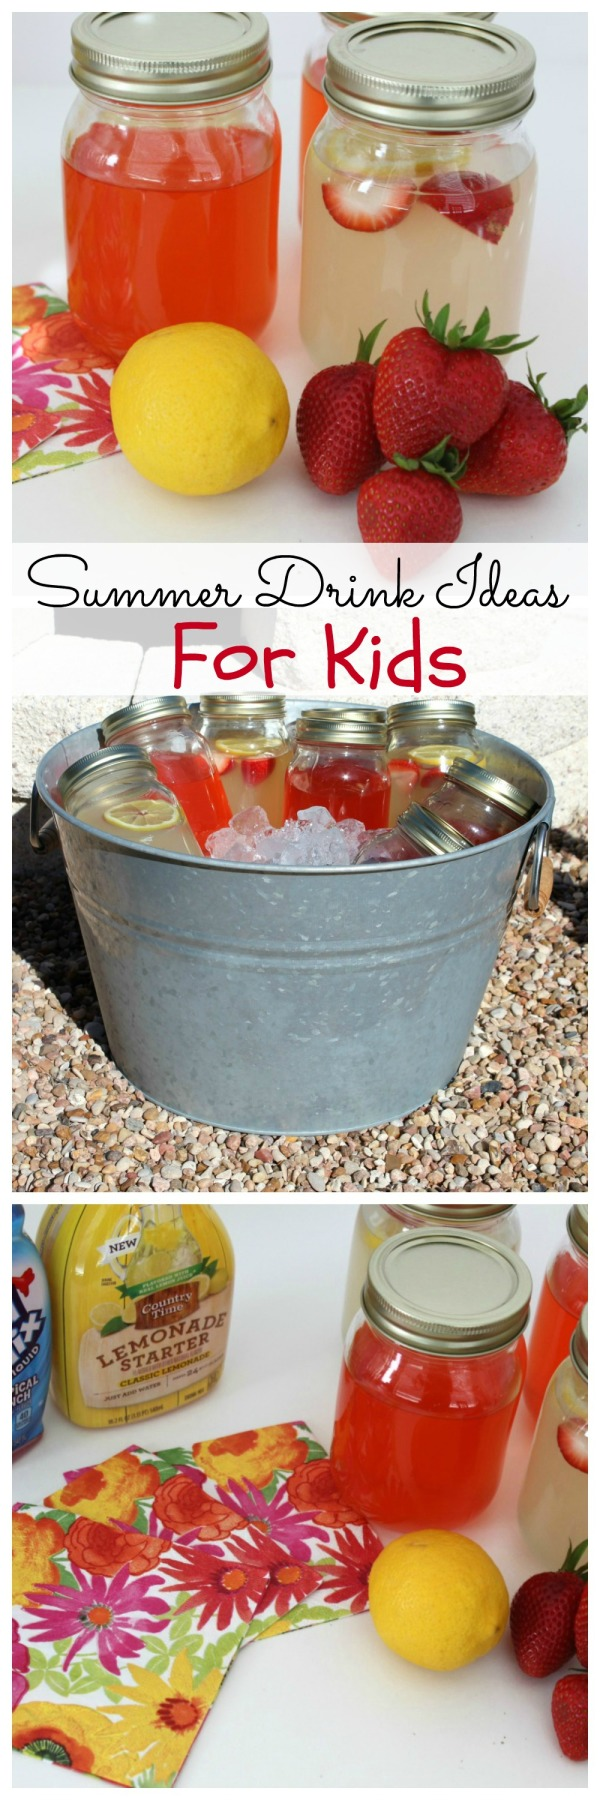 summer drink ideas for kids-04